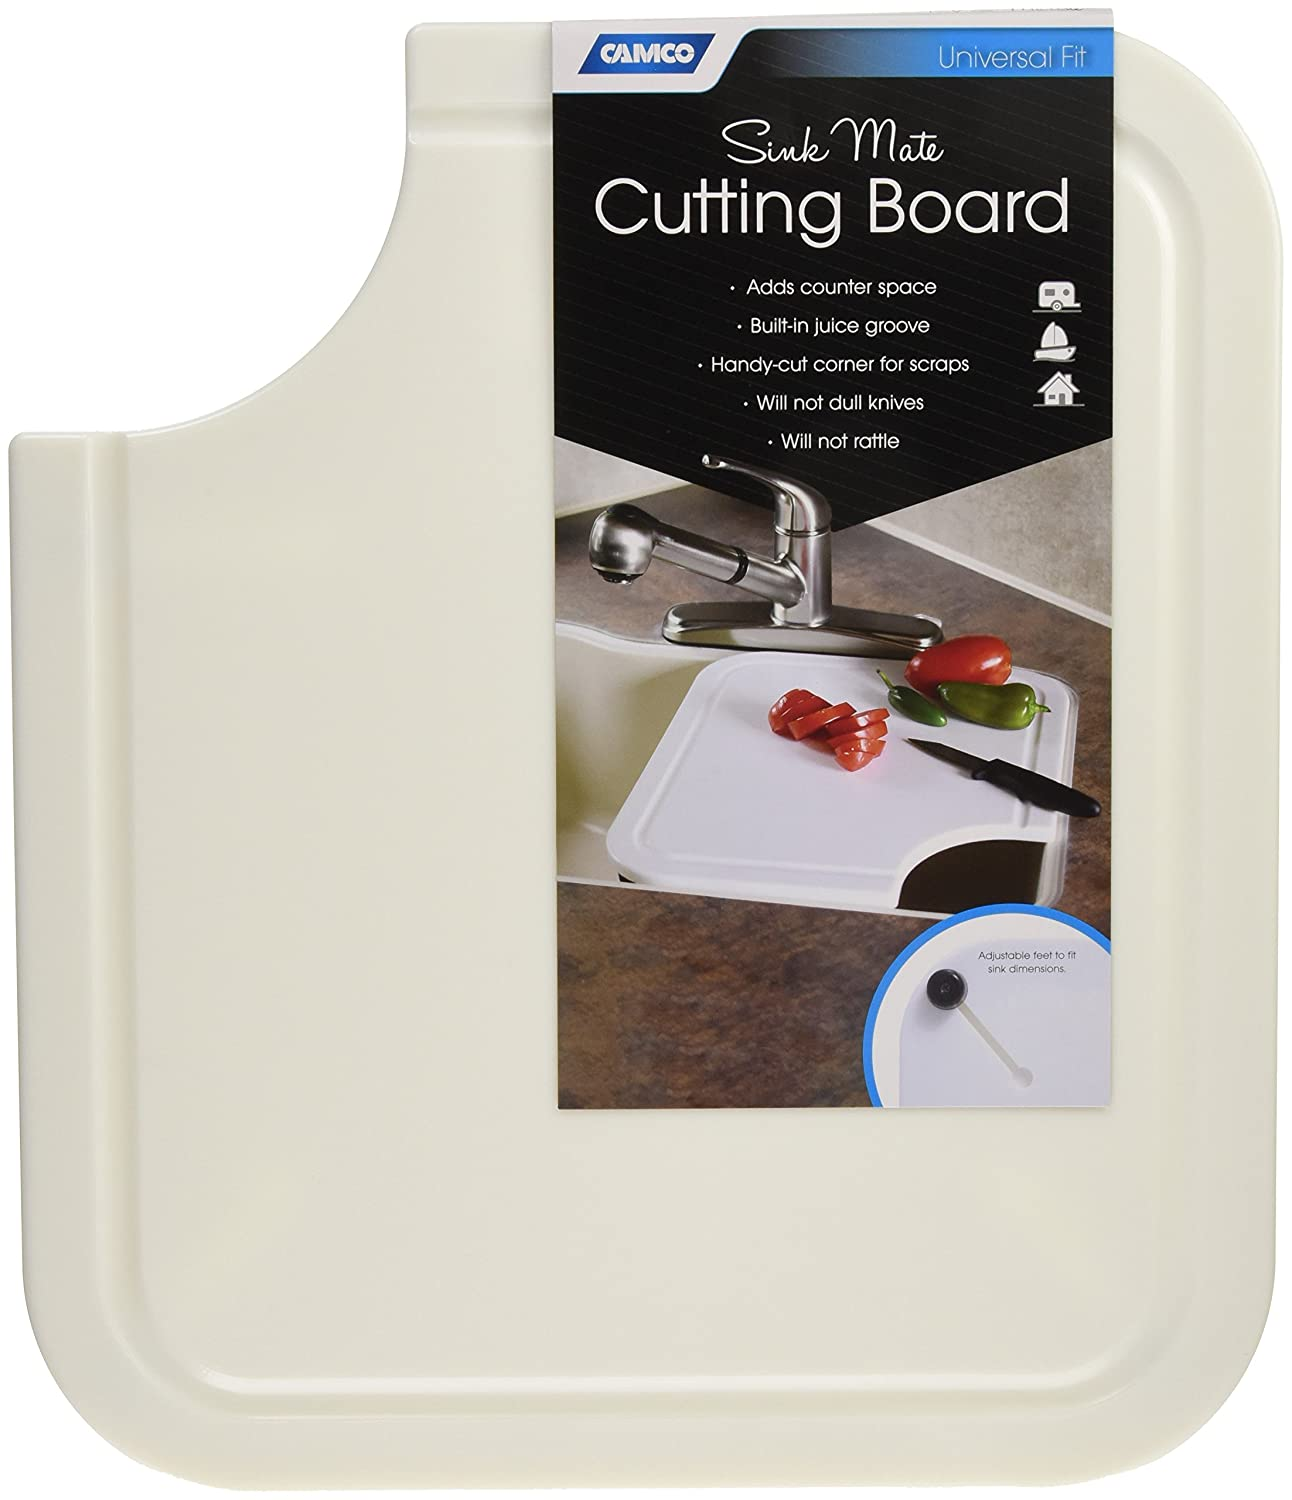 Amazon.com: Camco Sink Mate Cutting Board   Designed For RV, Camper, And  Trailer Kitchen Sinks  Create More Counter Space, Cut Corner For Scrap  Release, ...